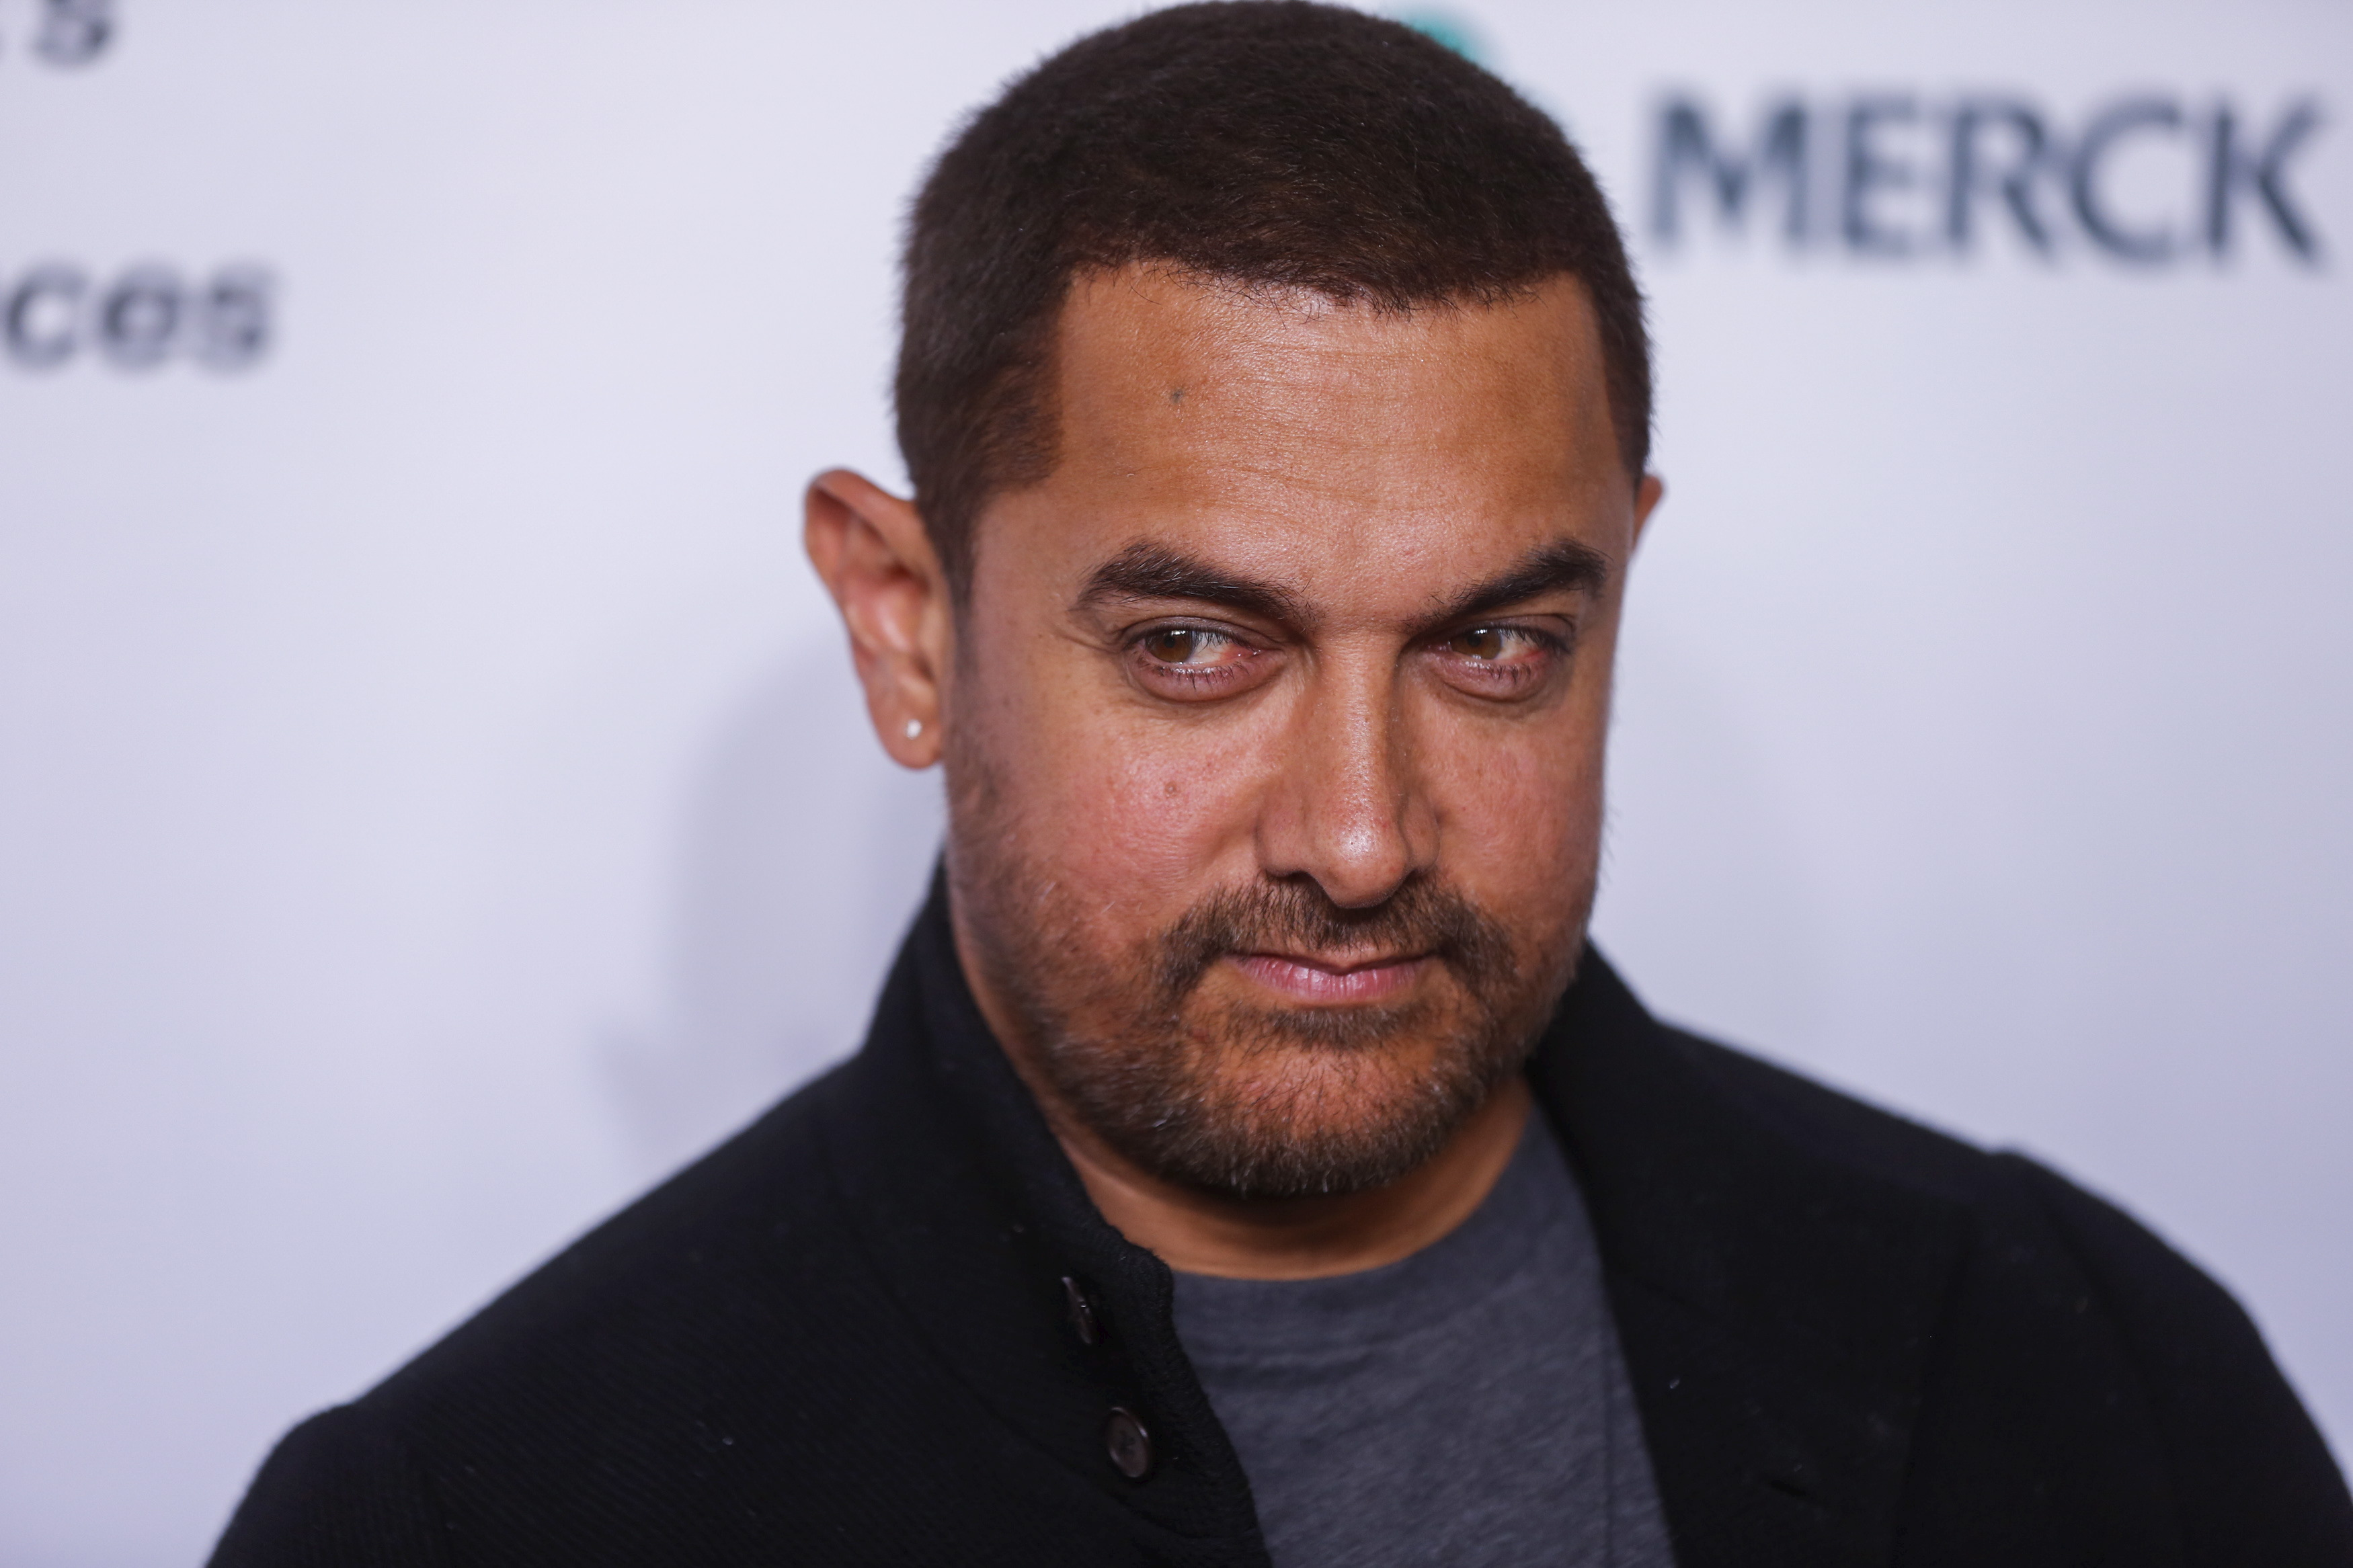 Indian actor Aamir Khan arrives for the opening night of the Women in the World summit in New York City on April 22, 2015